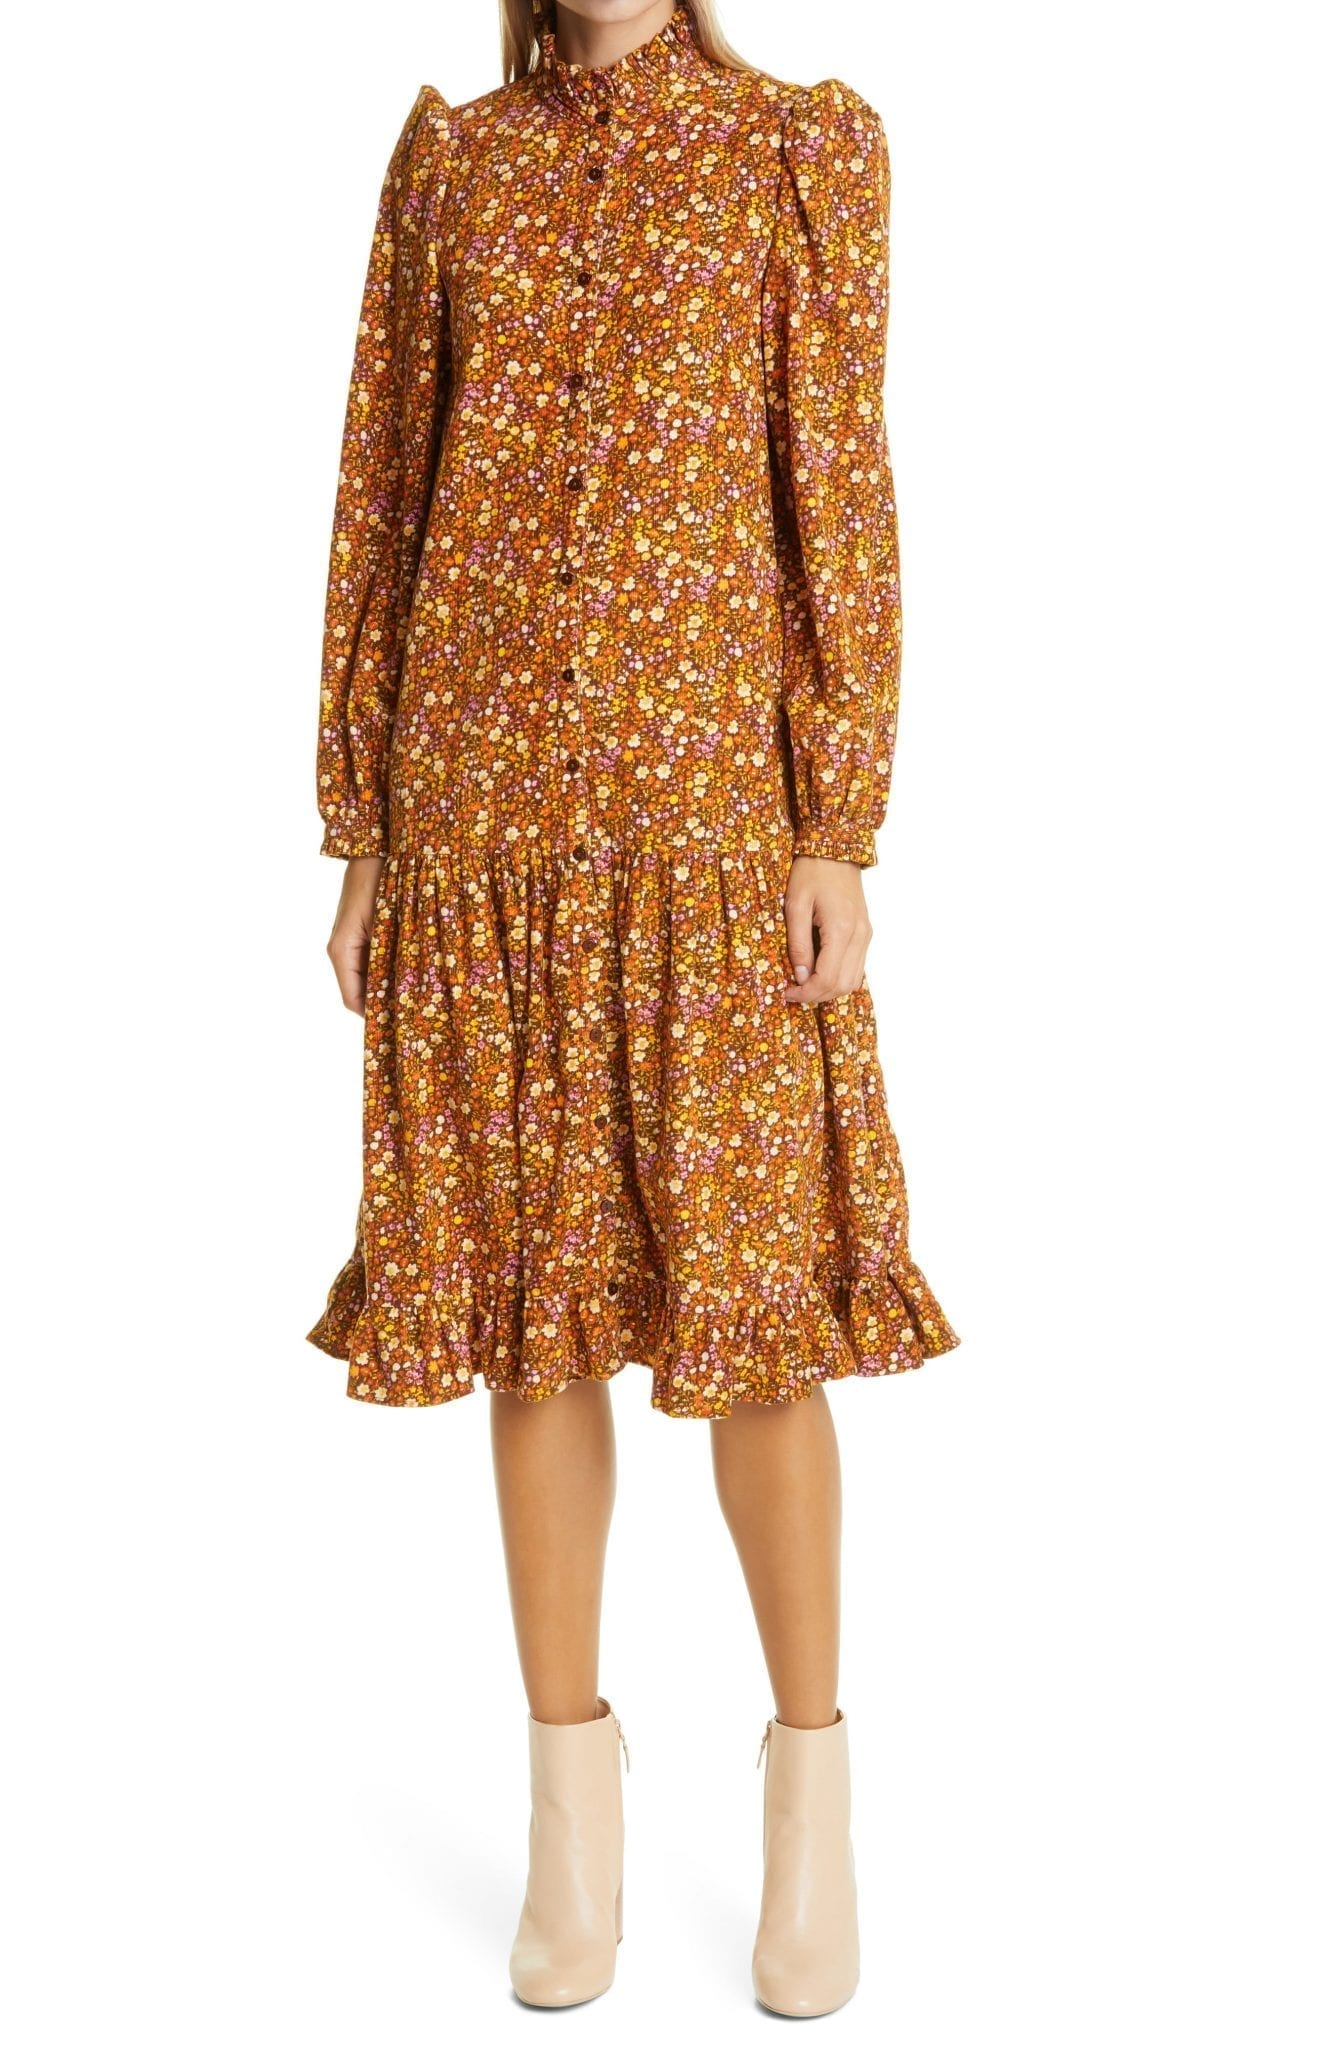 BYTIMO Floral Ditsy Long Sleeve Corduroy Midi Dress